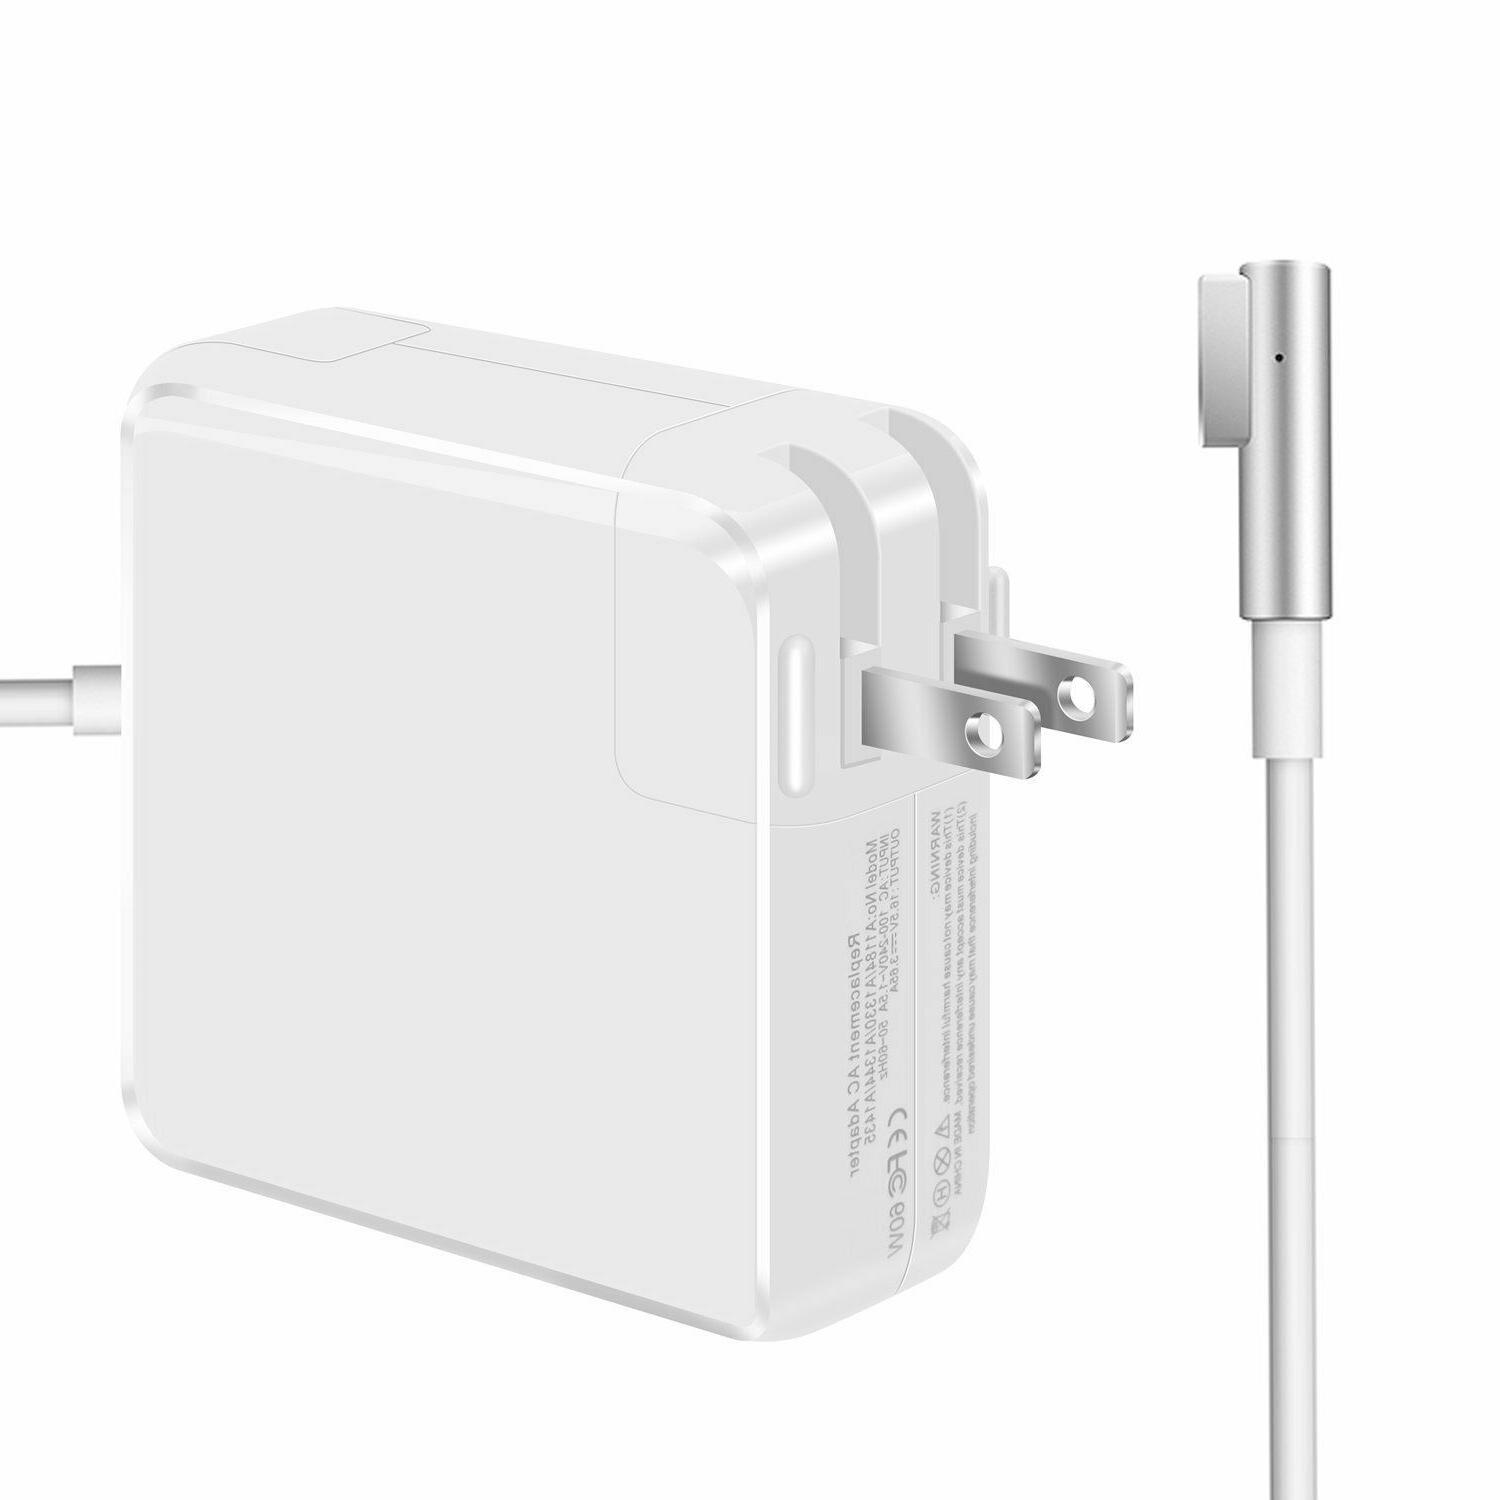 Macbook Pro Charger. 60W L-Tip Replacement Power Adapter